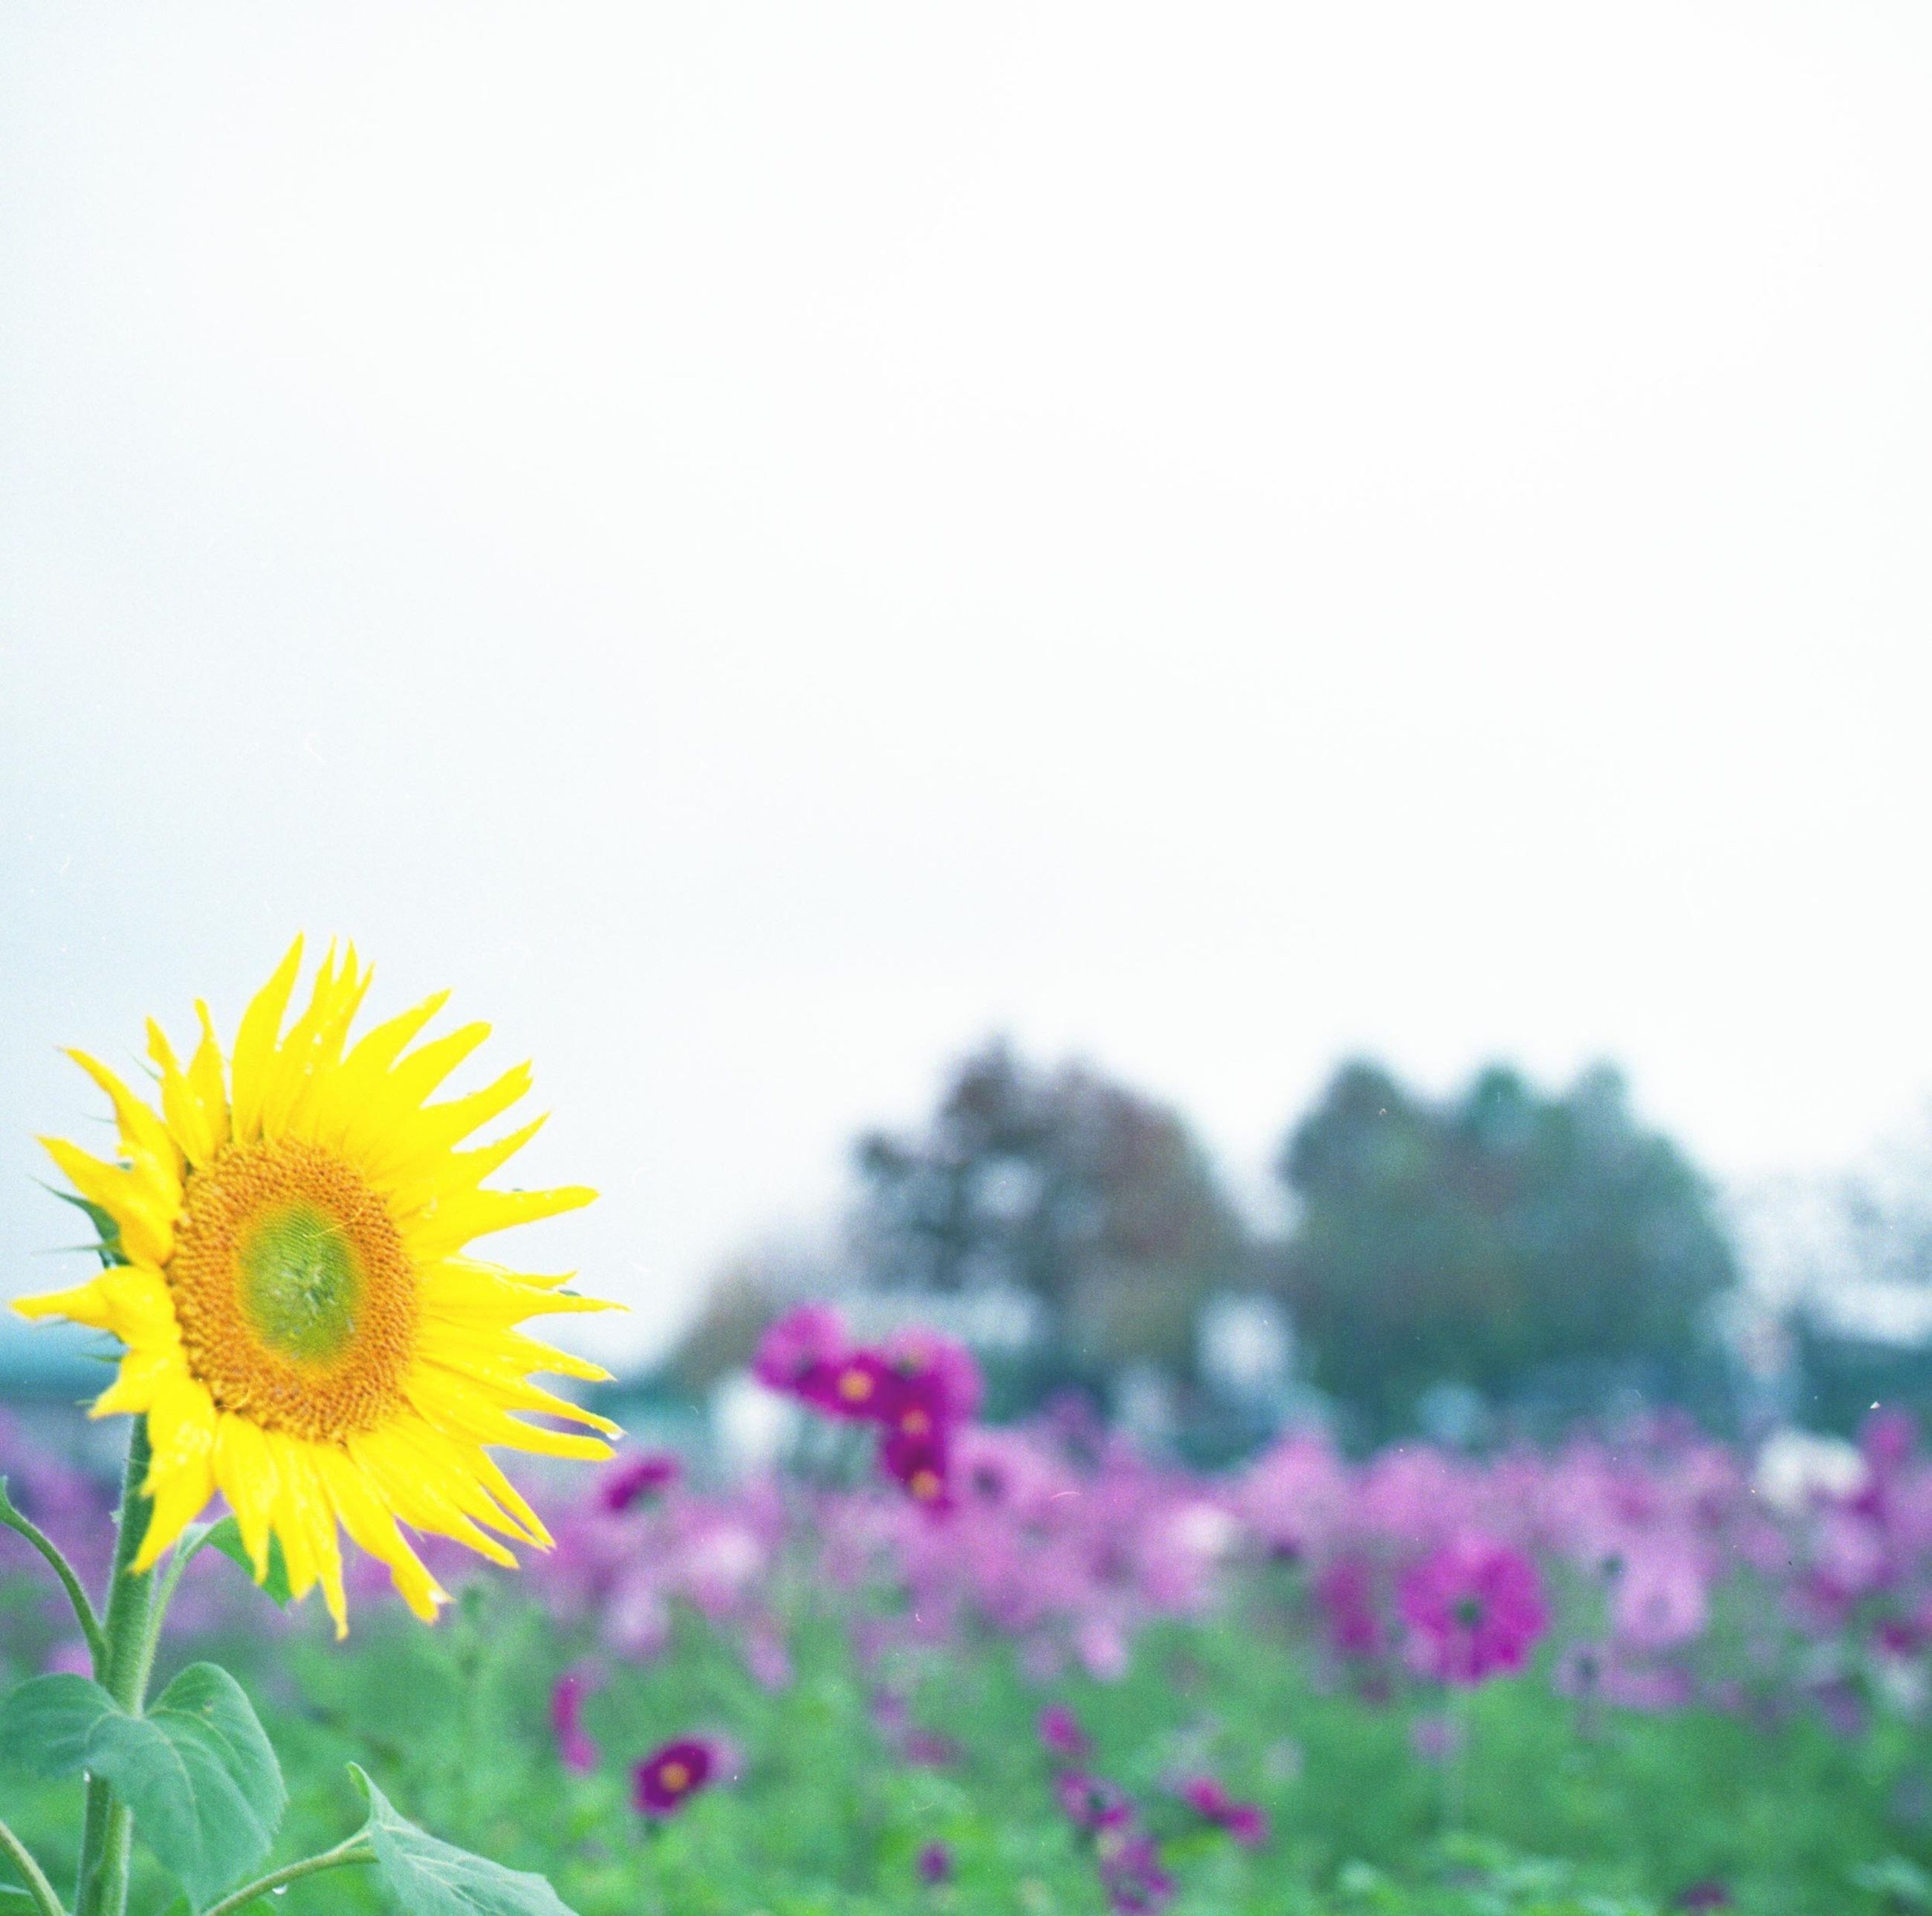 flower, yellow, fragility, freshness, petal, flower head, growth, beauty in nature, blooming, plant, nature, clear sky, sunflower, in bloom, copy space, close-up, focus on foreground, outdoors, field, pollen